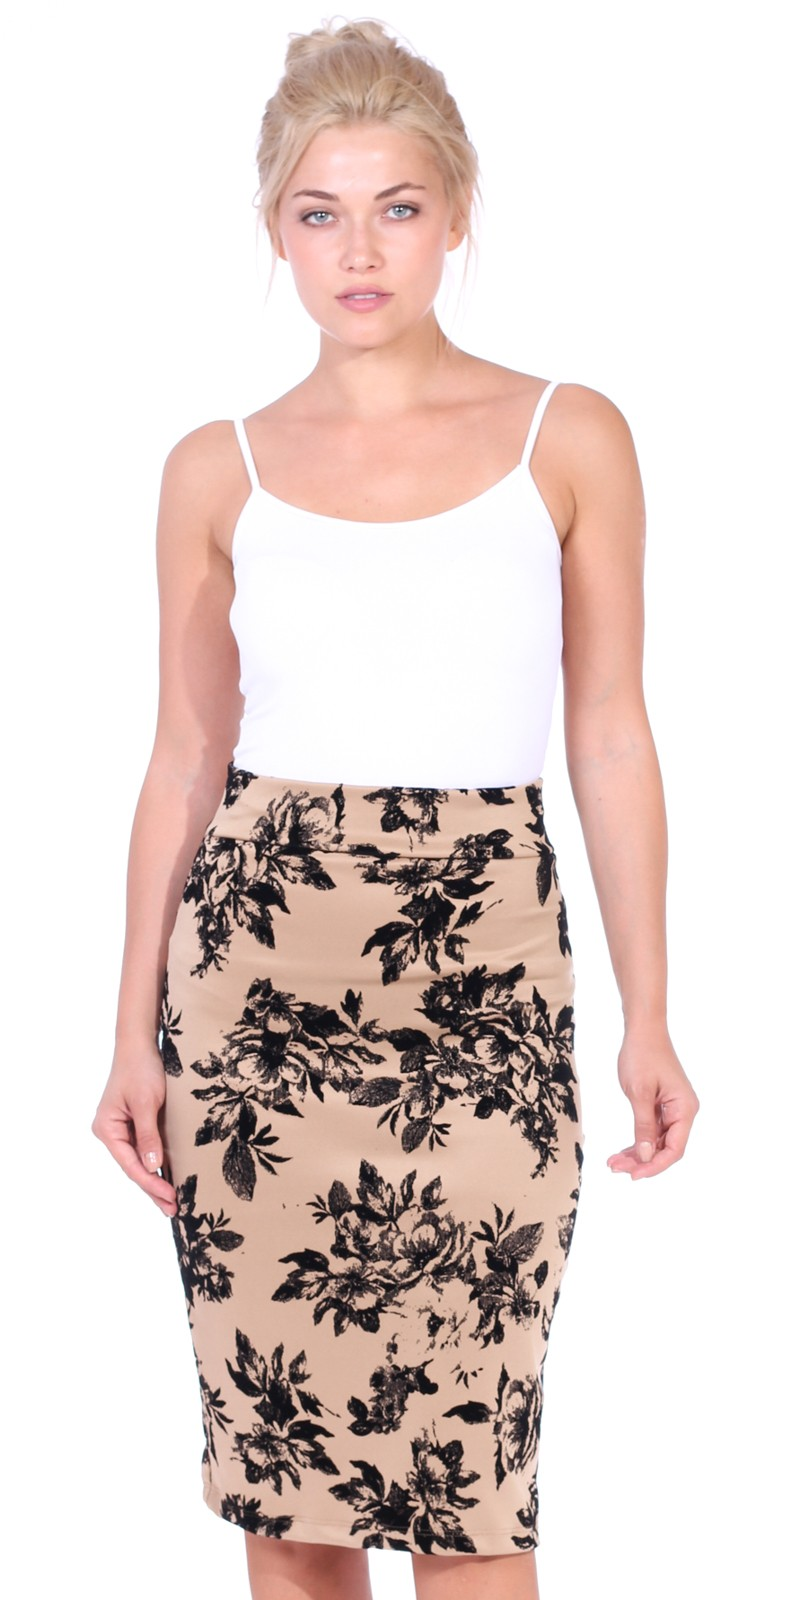 Womens Stretch Pencil Skirt Knee Length for Work or Office - Shaping Bodycon Midi Skirt - Made In USA - Cream